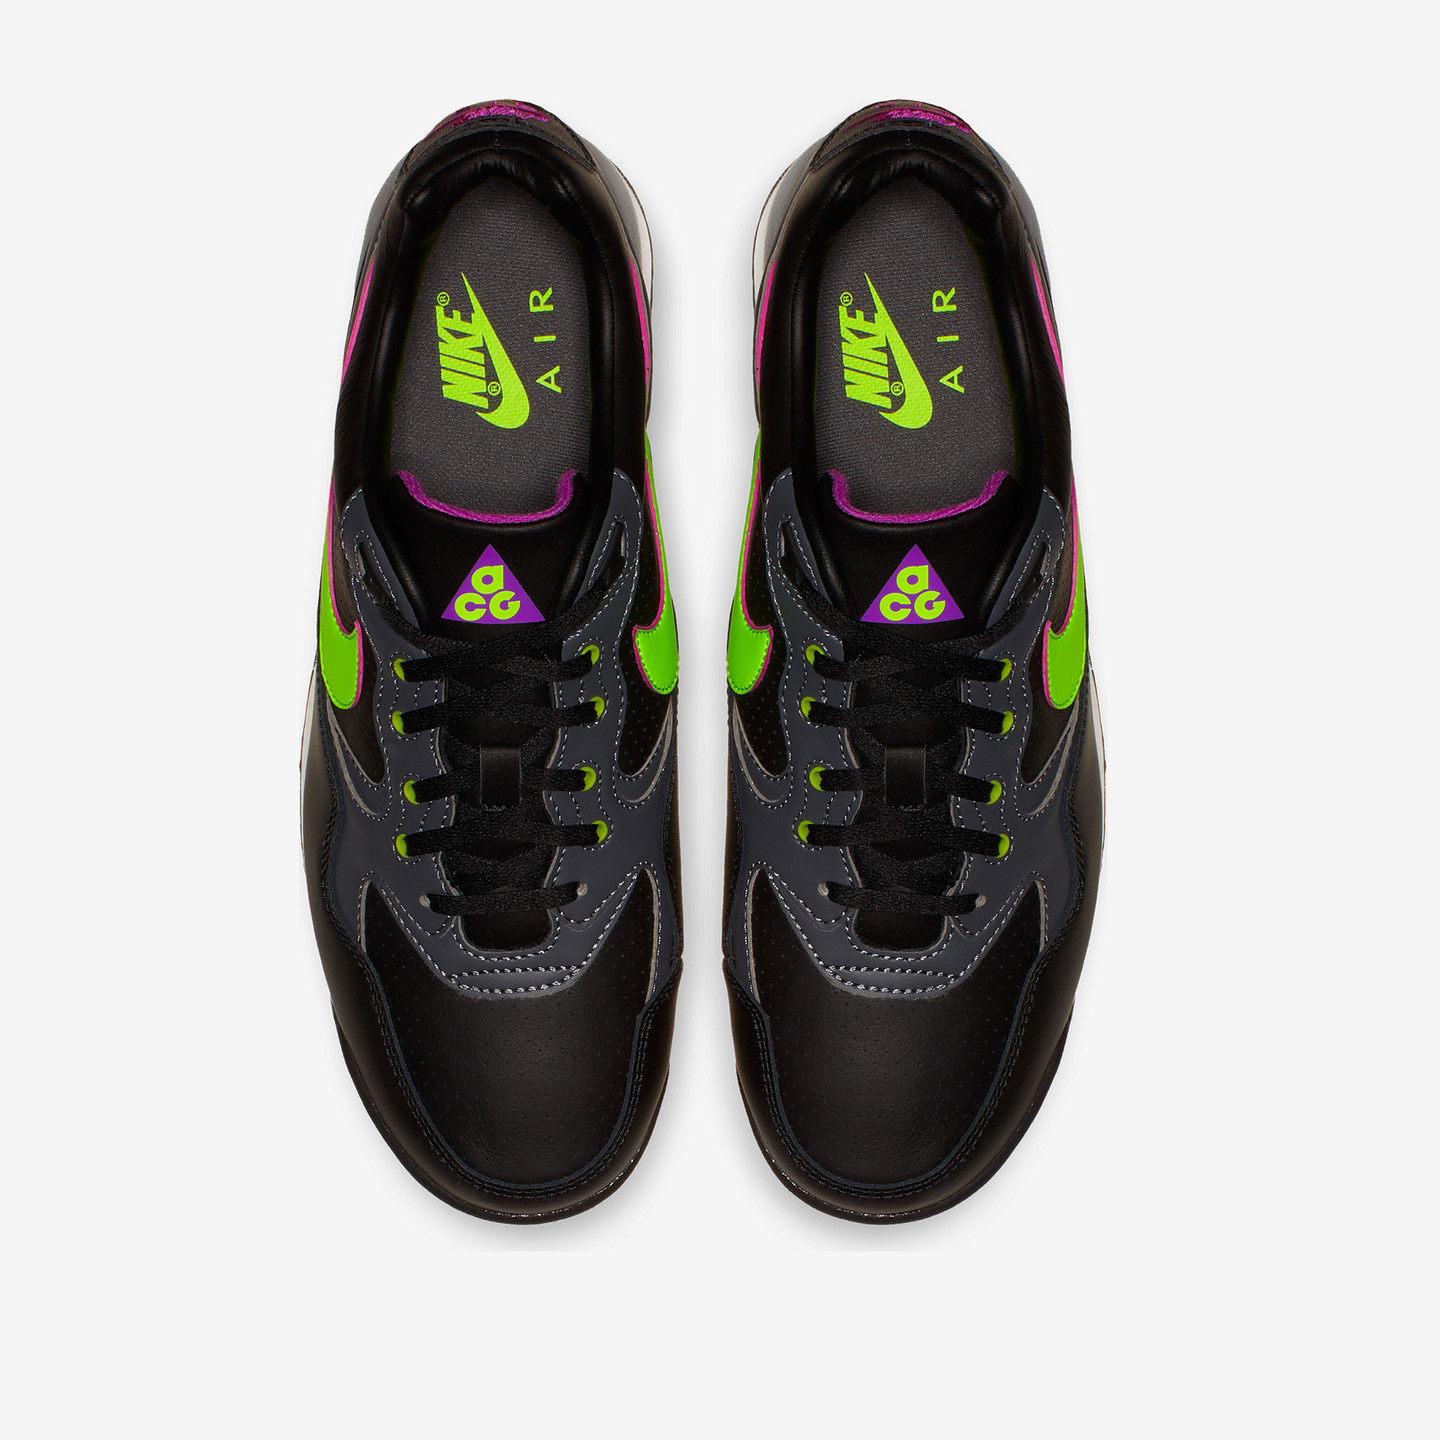 Nike ACG Air Wildwood Black / Electic Green AO3116-002